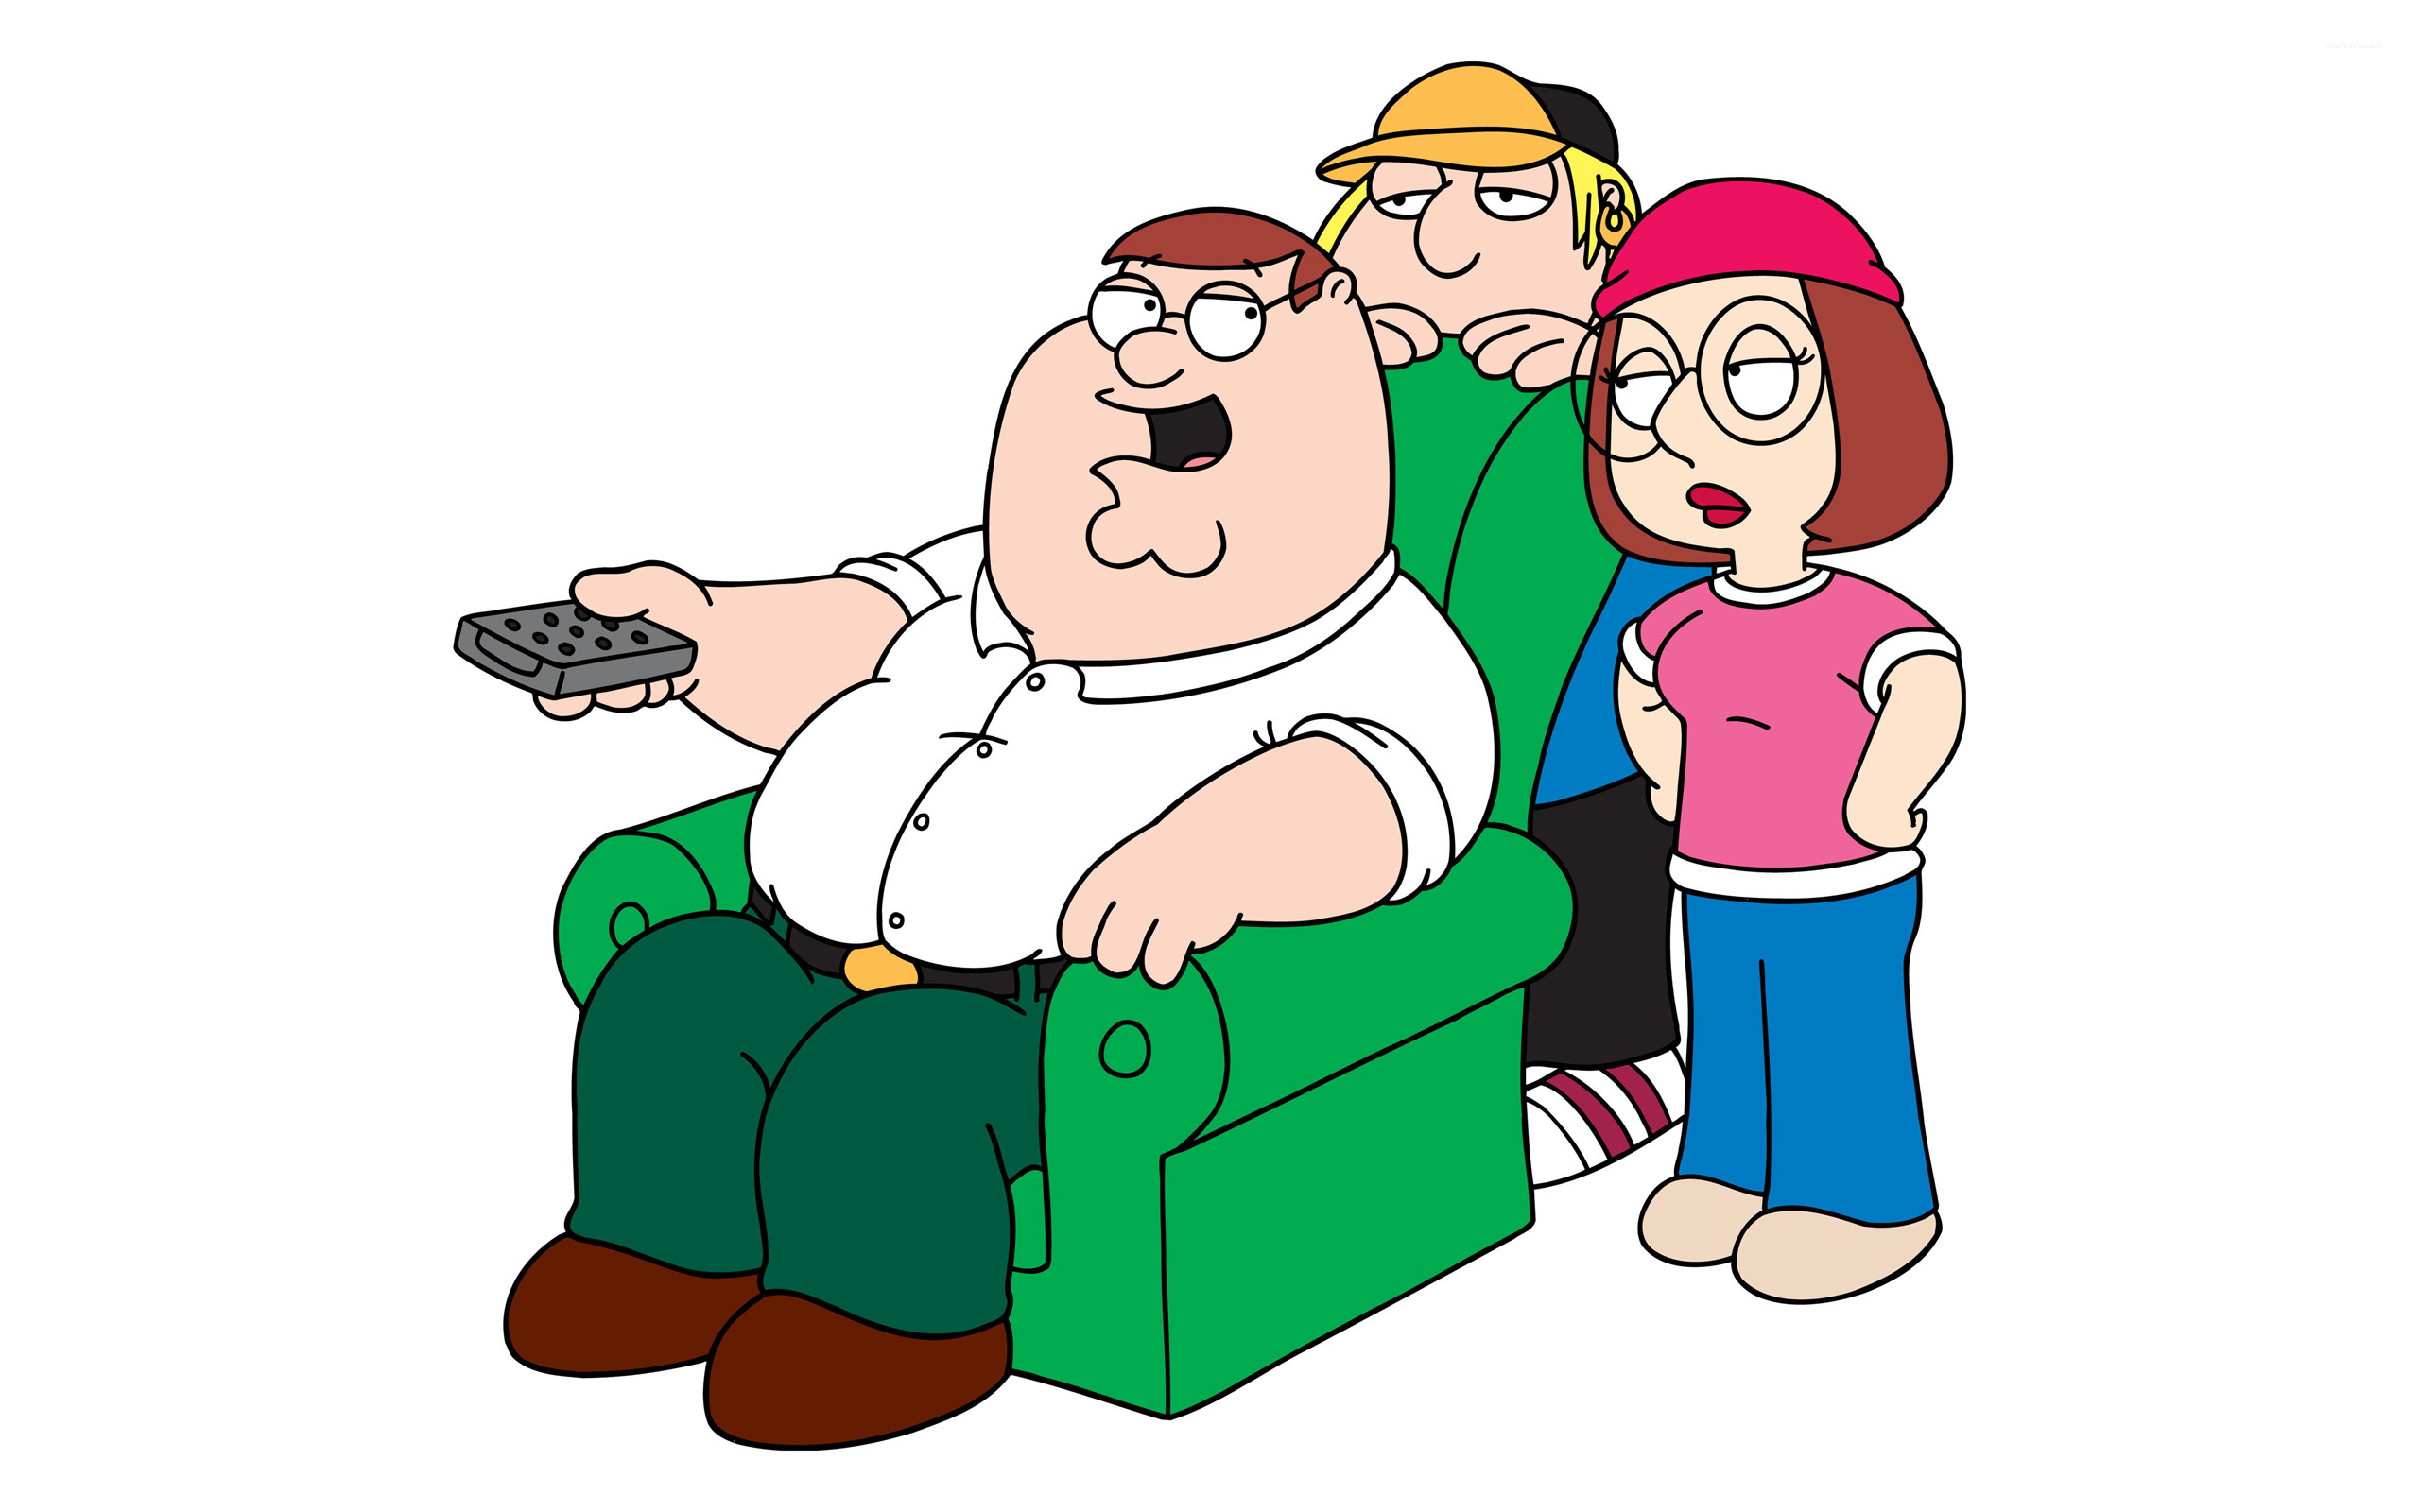 cartoon family guy Watch family guy: season 16 cartoon online full free on kimcartoon in high qualityfamily guy: season 16 full movie free cartoons online, watchcartoononline, toonova, english dub anime.